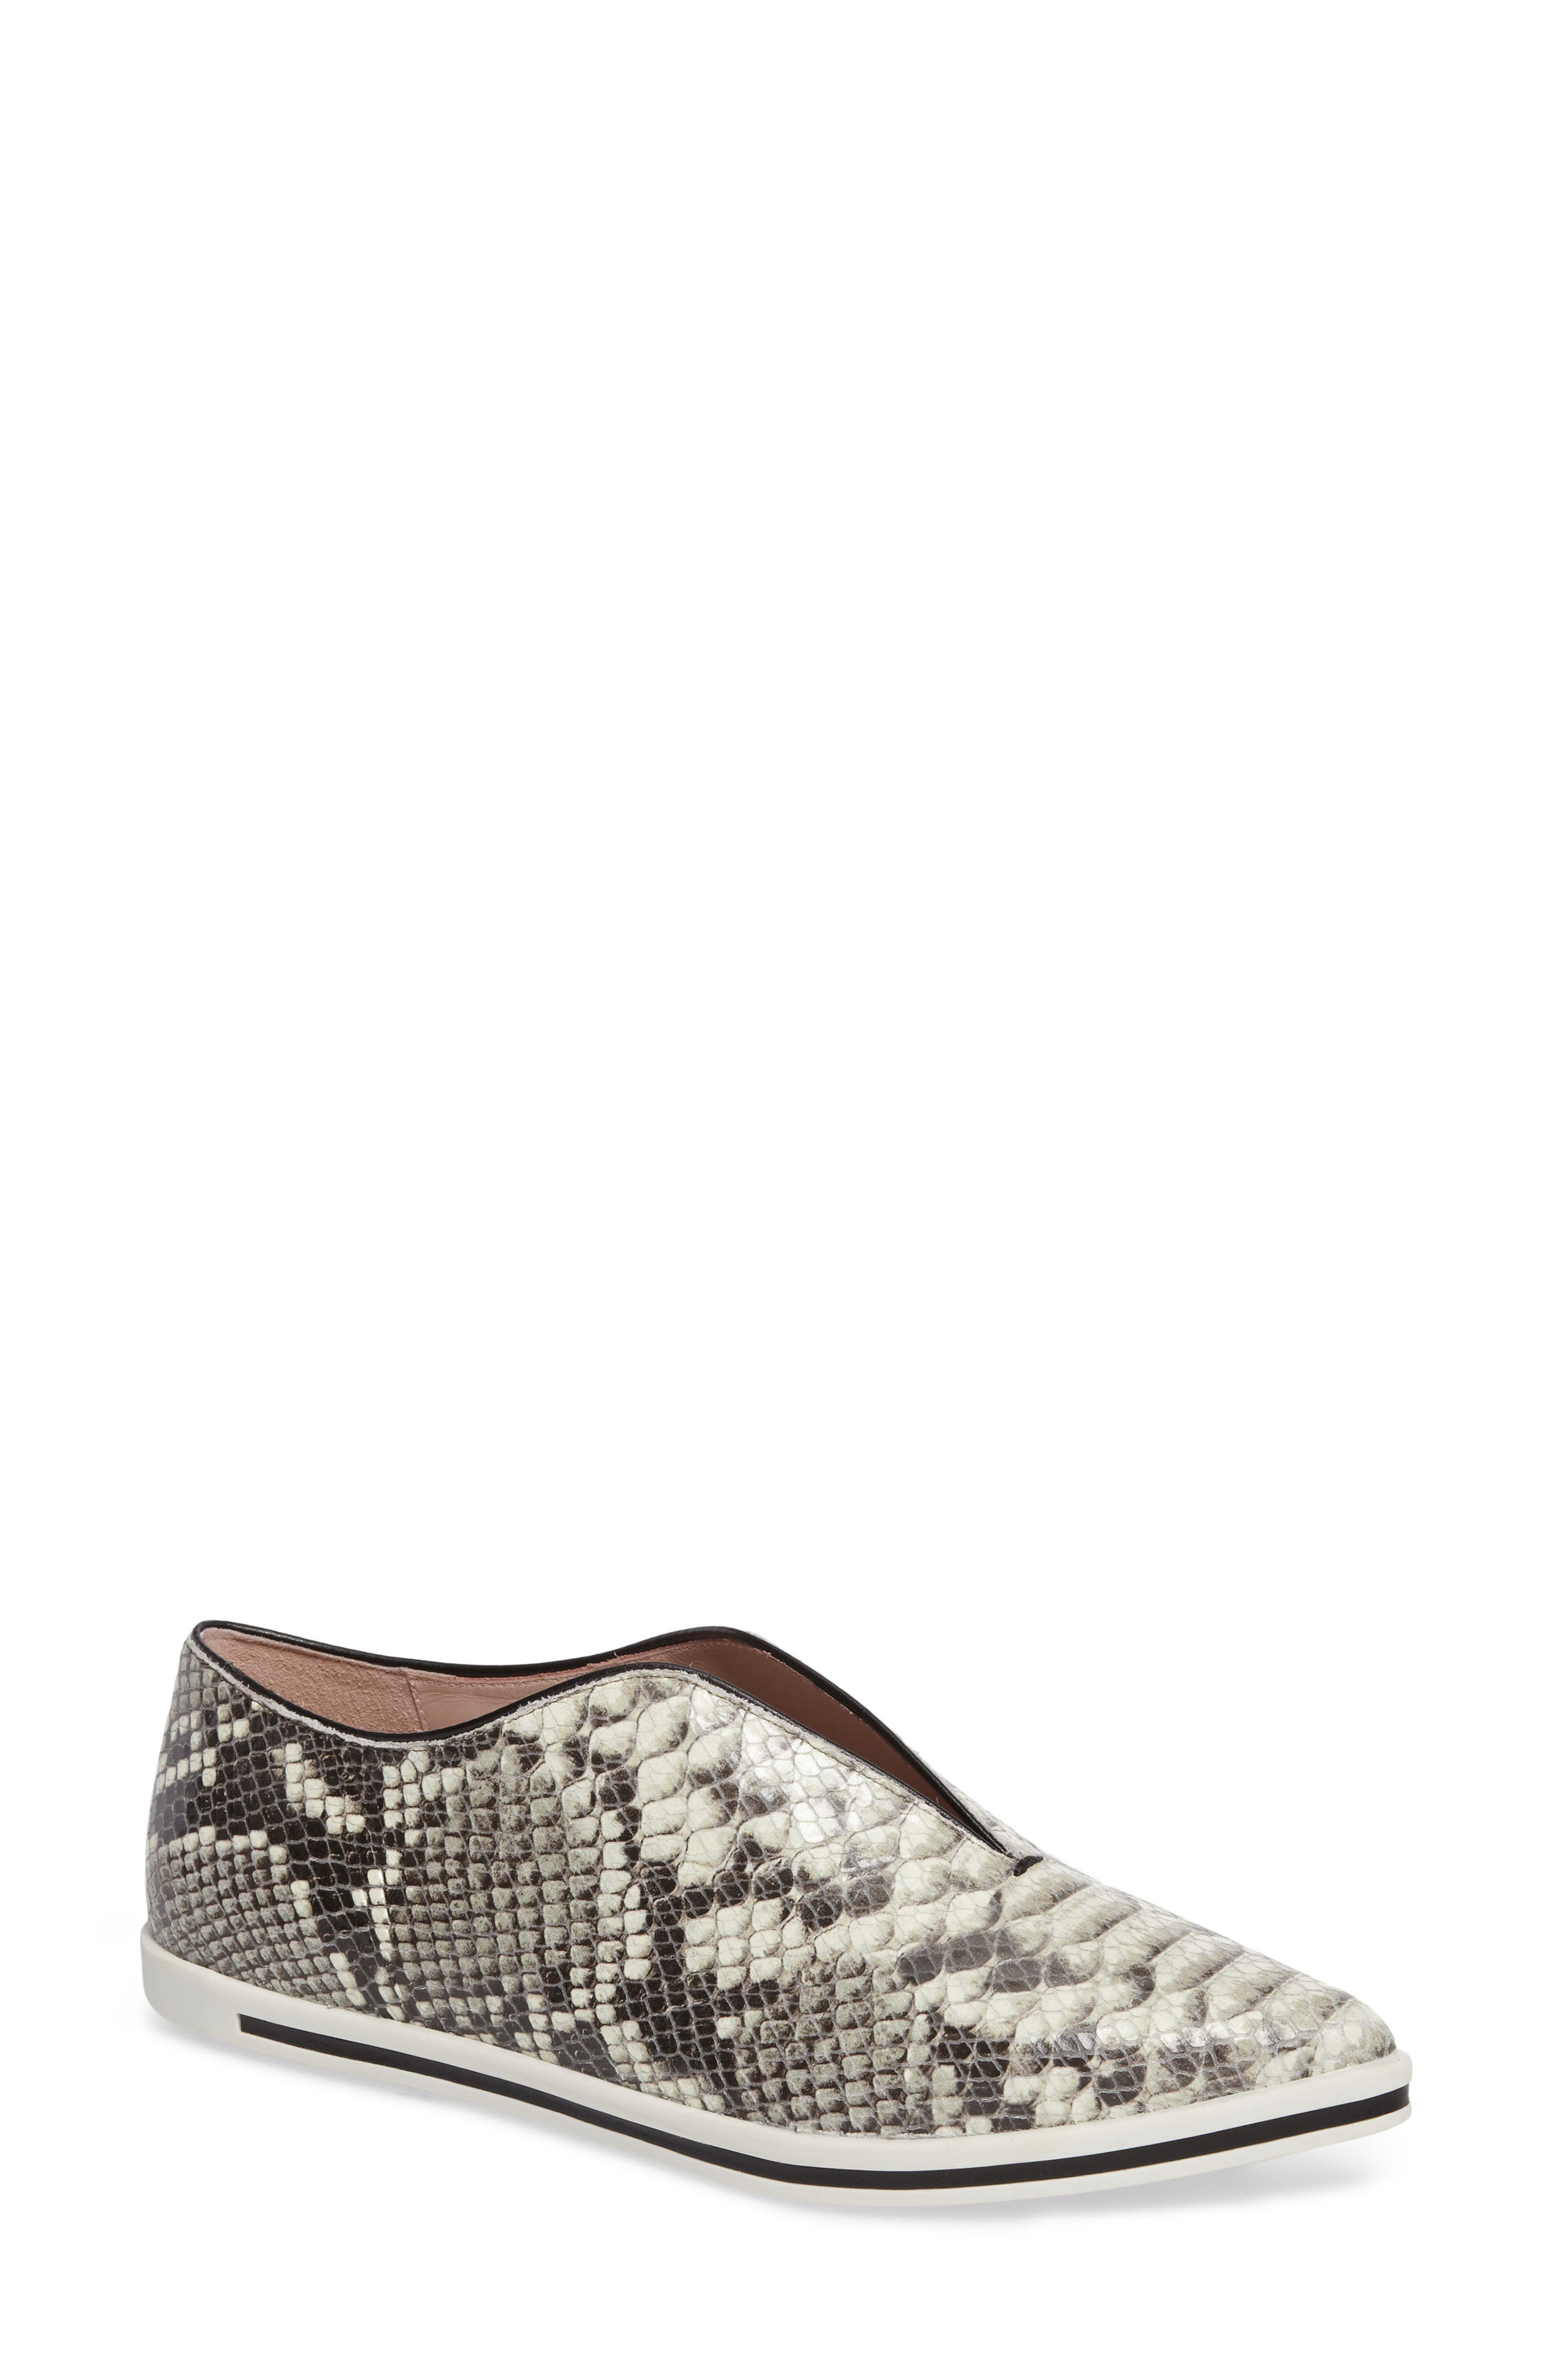 Tisha Slip-On Sneaker,                         Main,                         color, Natural Embossed Leather